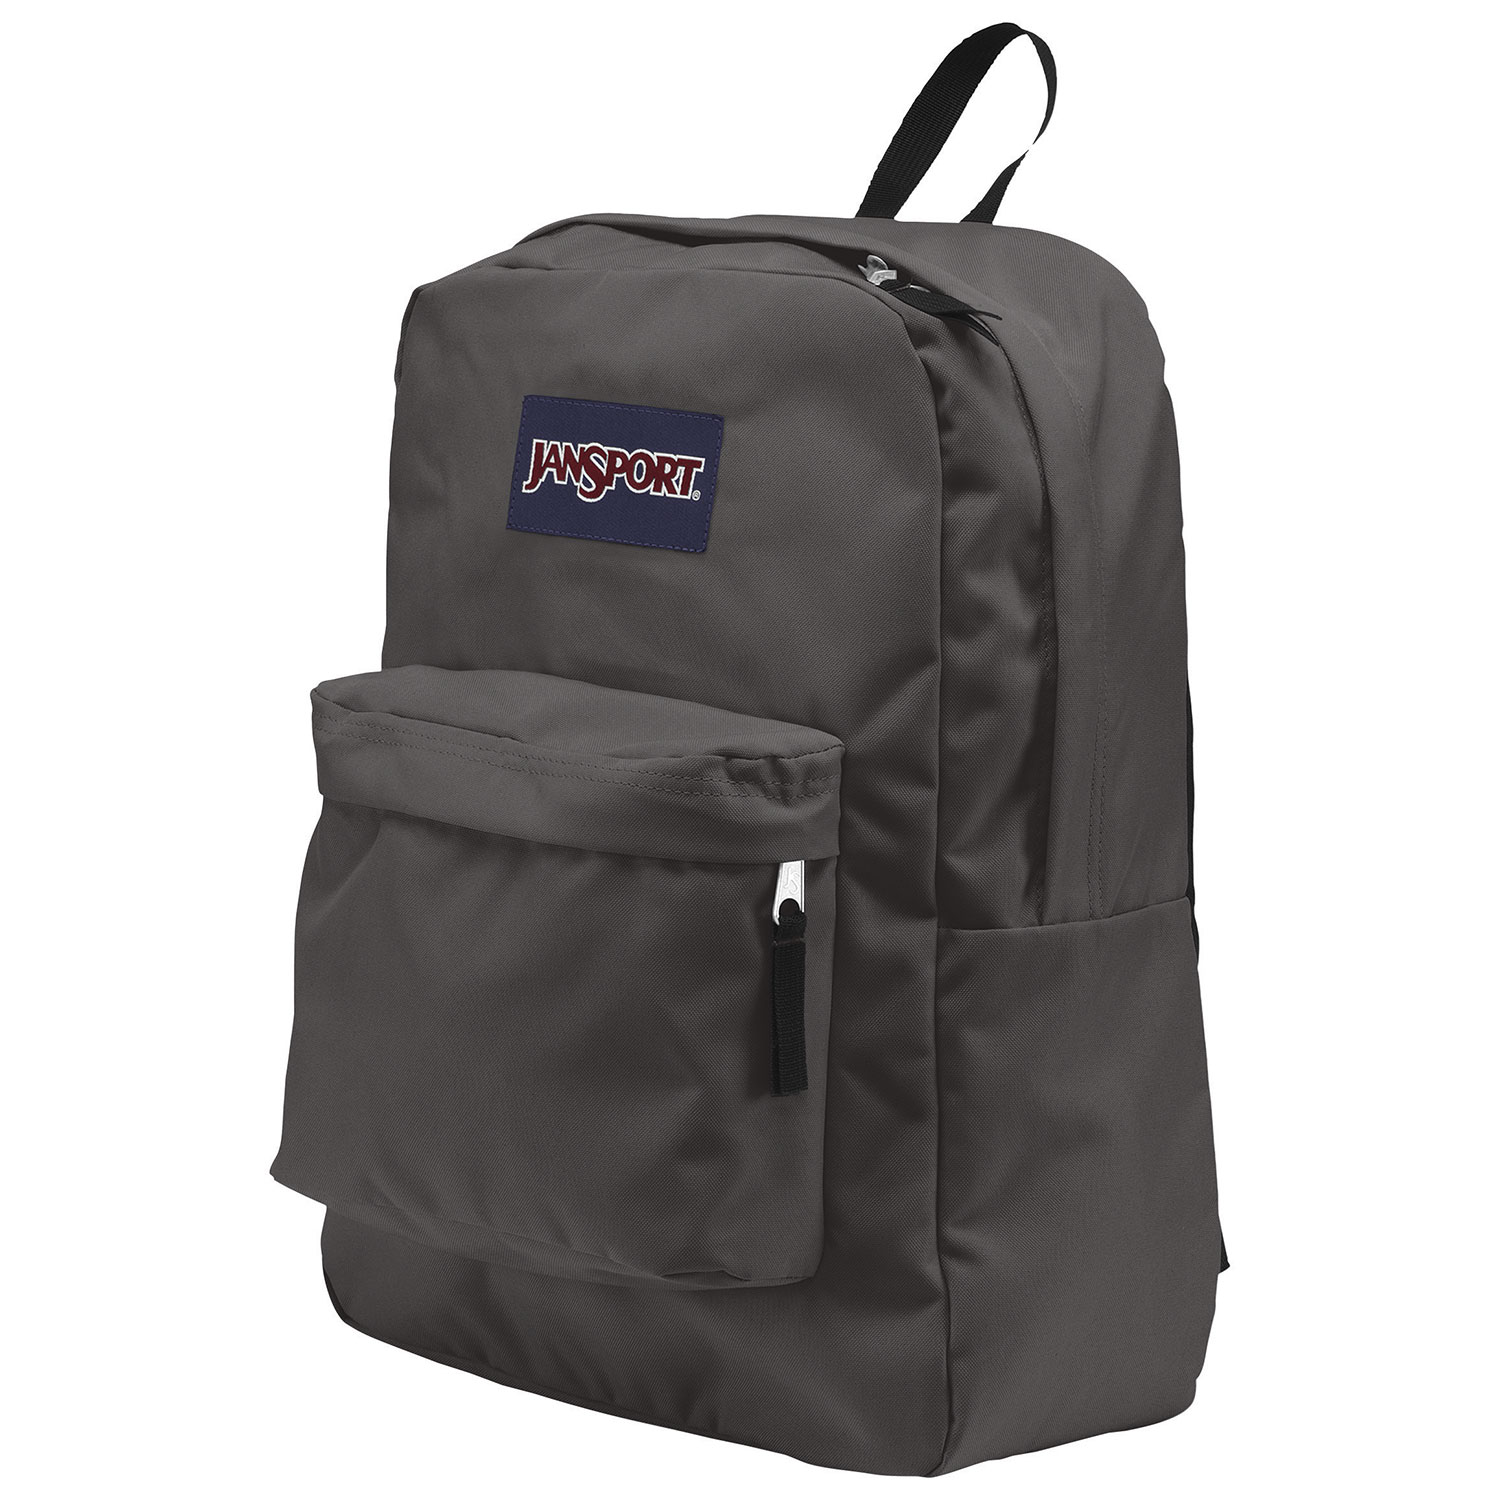 JanSport backpacks for back to school | Best Buy Blog